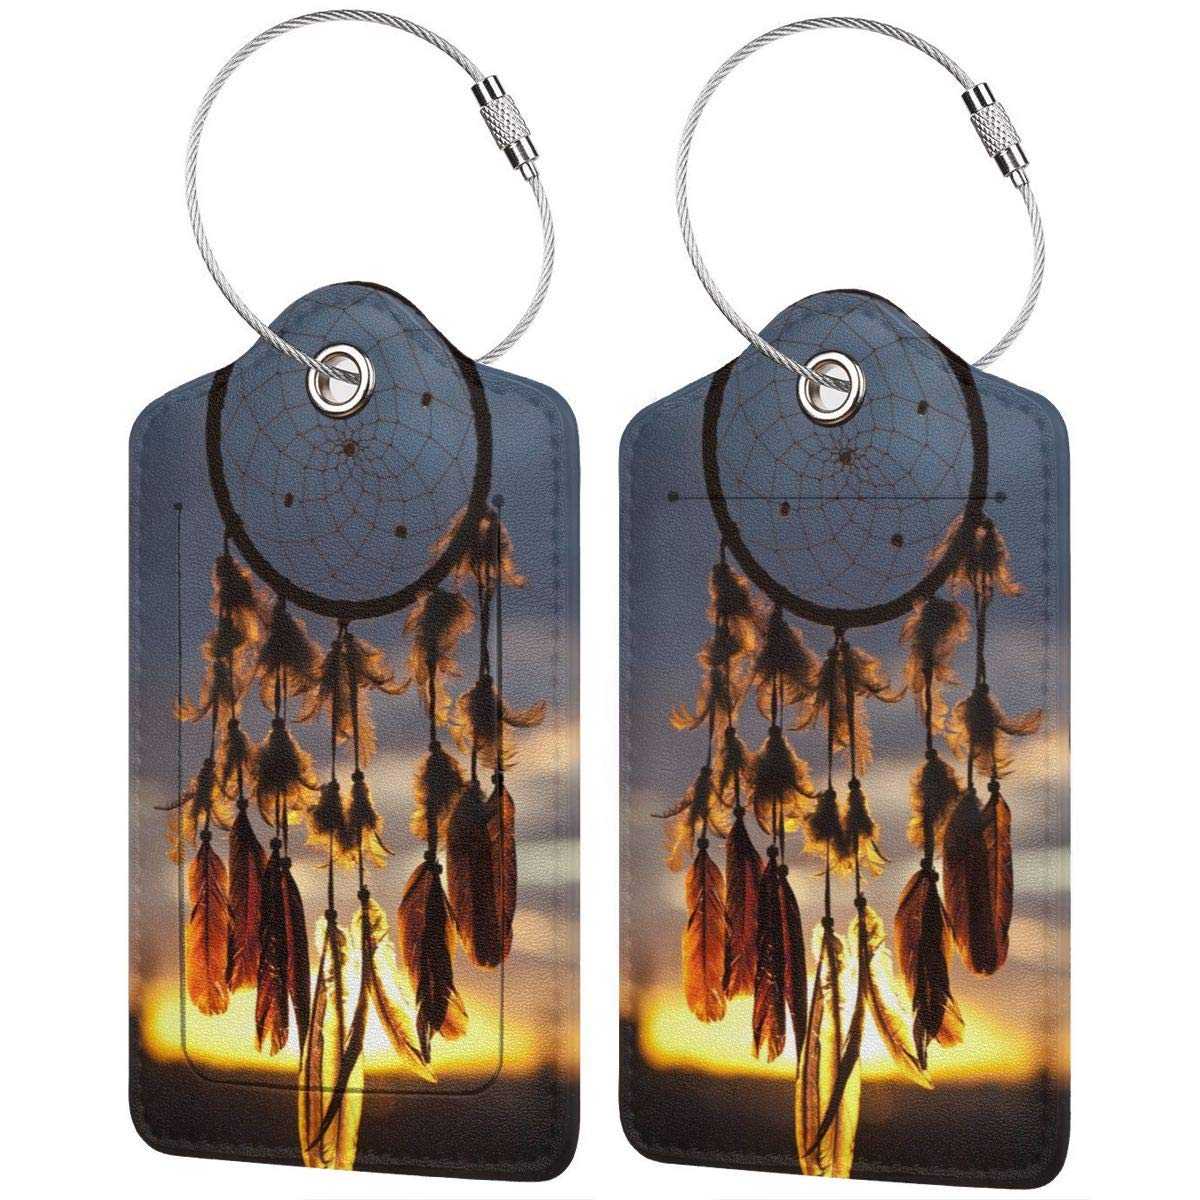 Dream Catcher Travel Luggage Tags With Full Privacy Cover Leather Case And Stainless Steel Loop